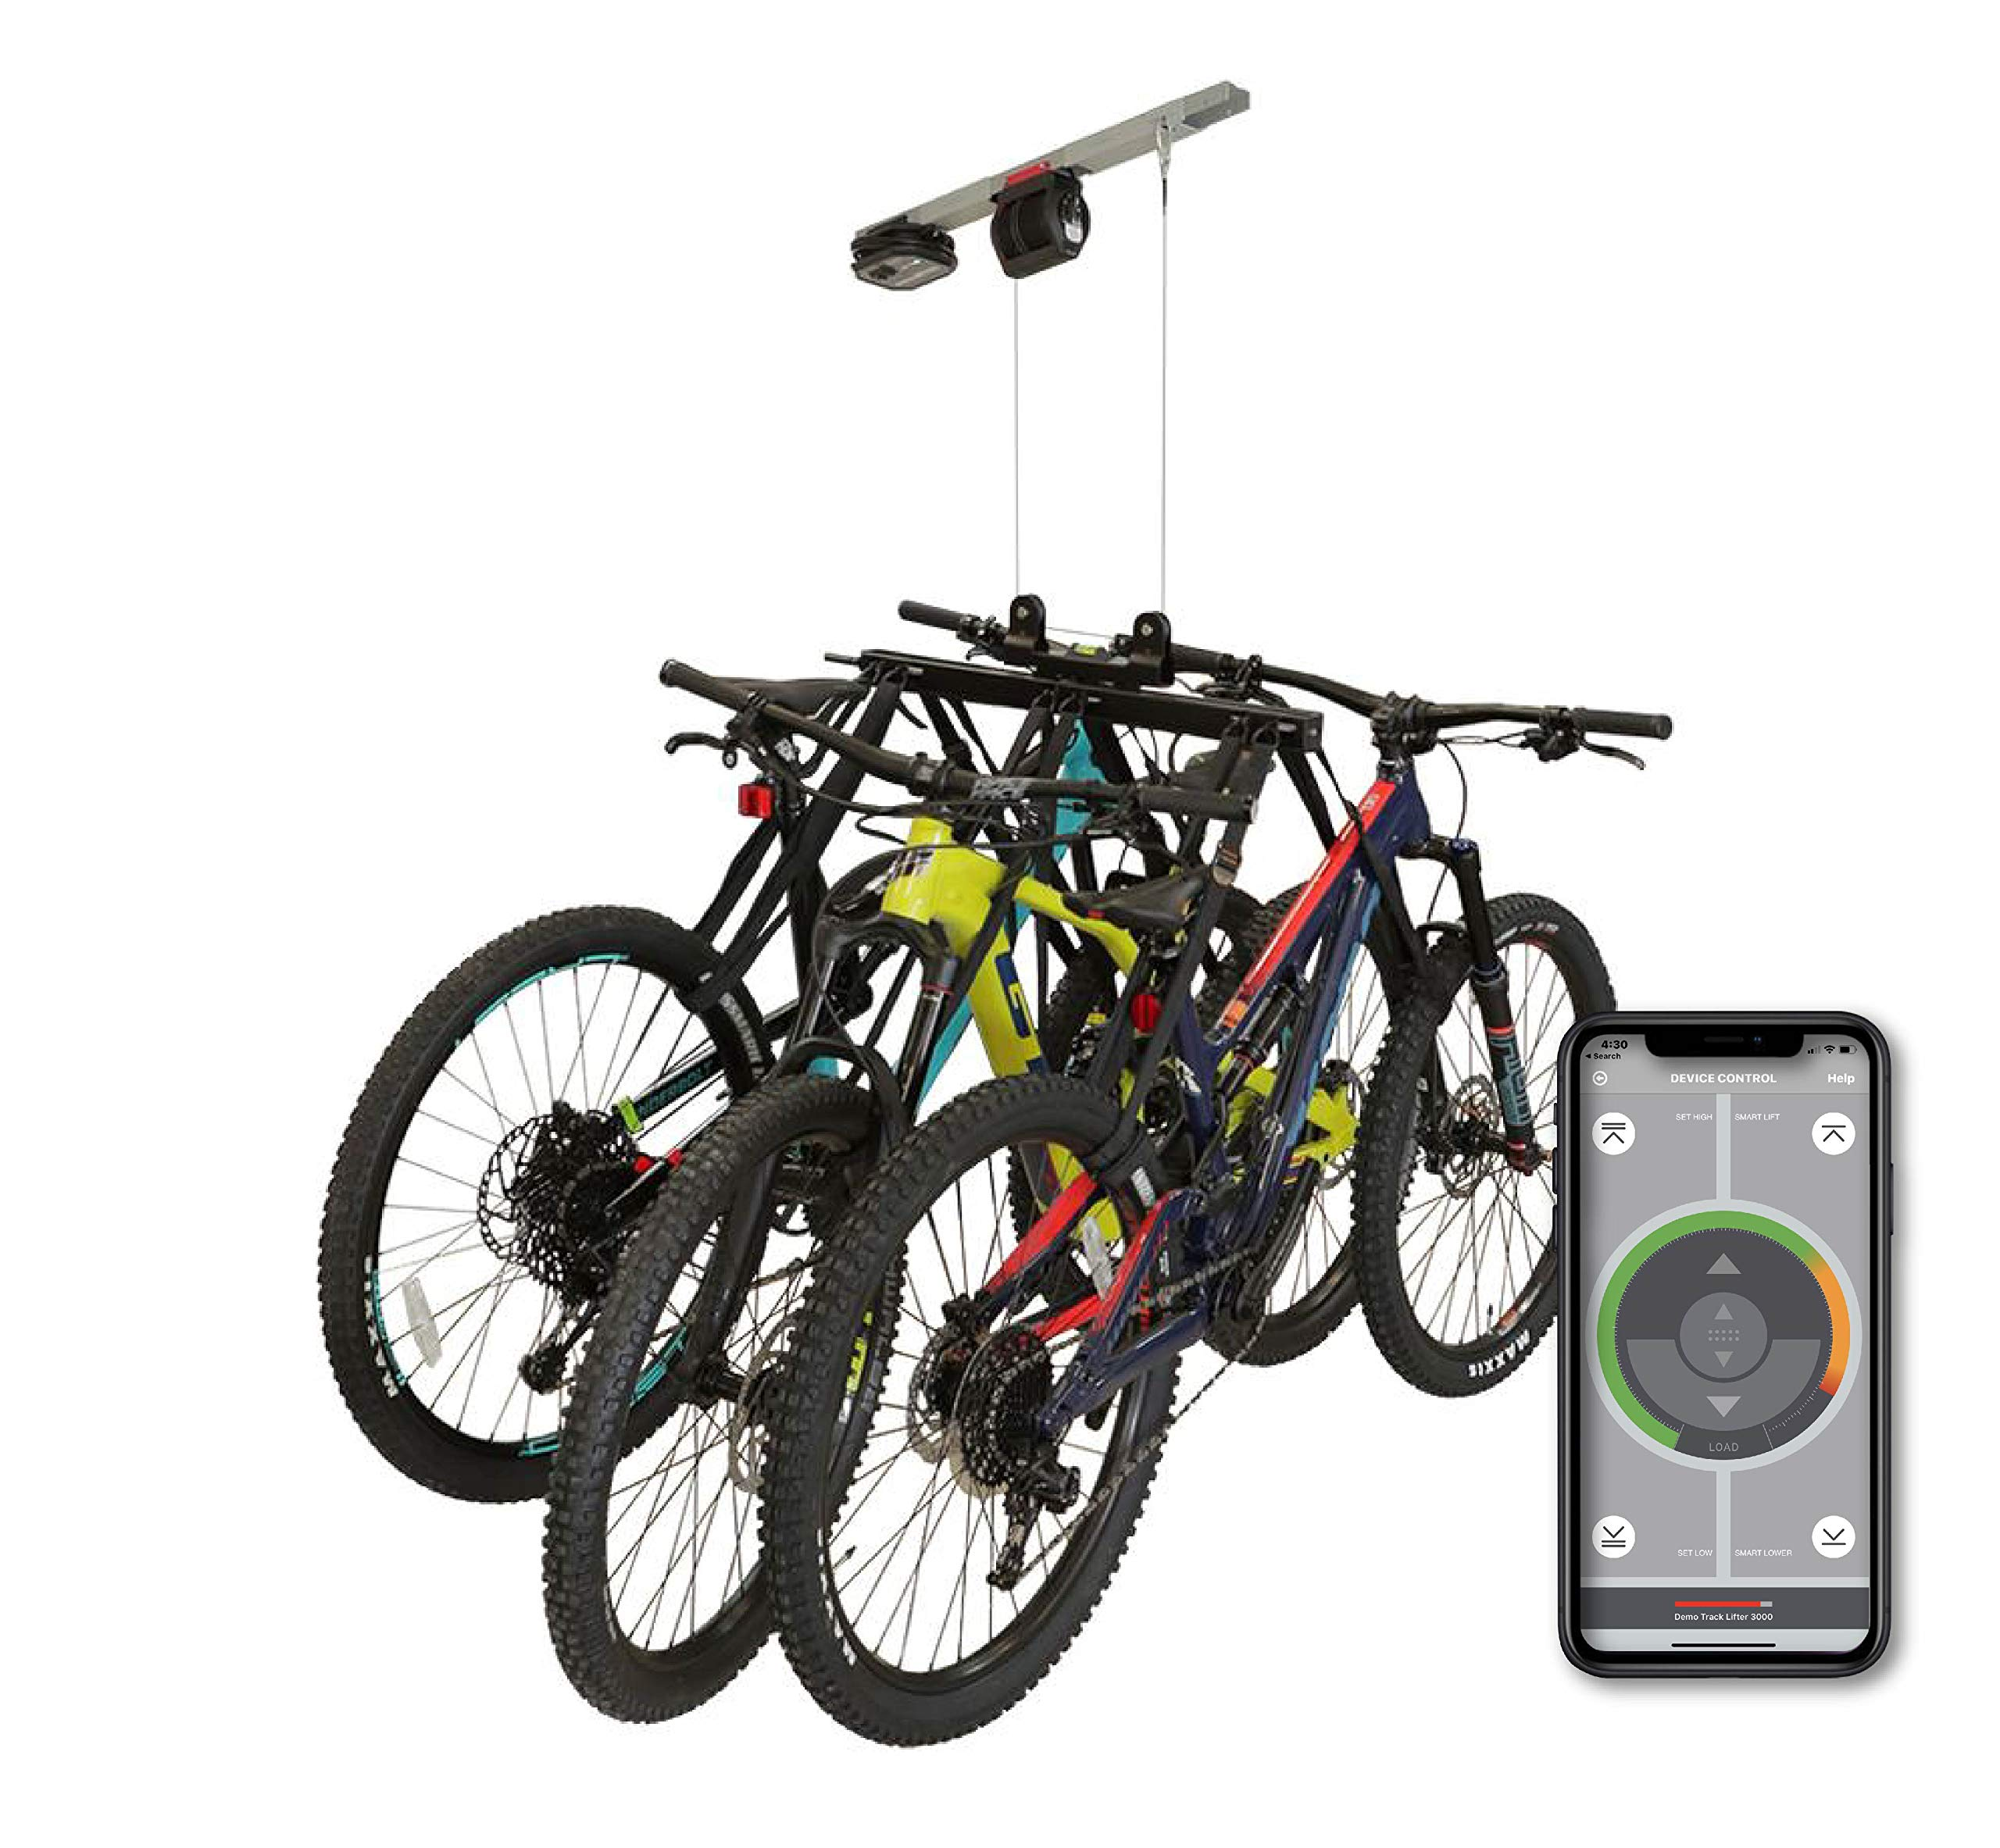 Garage Smart - Elevador multibicicleta motorizado, levanta 1,2 o 3 bicicletas hasta 100 libras, compatible con iOS y Android.: Amazon.es: Hogar